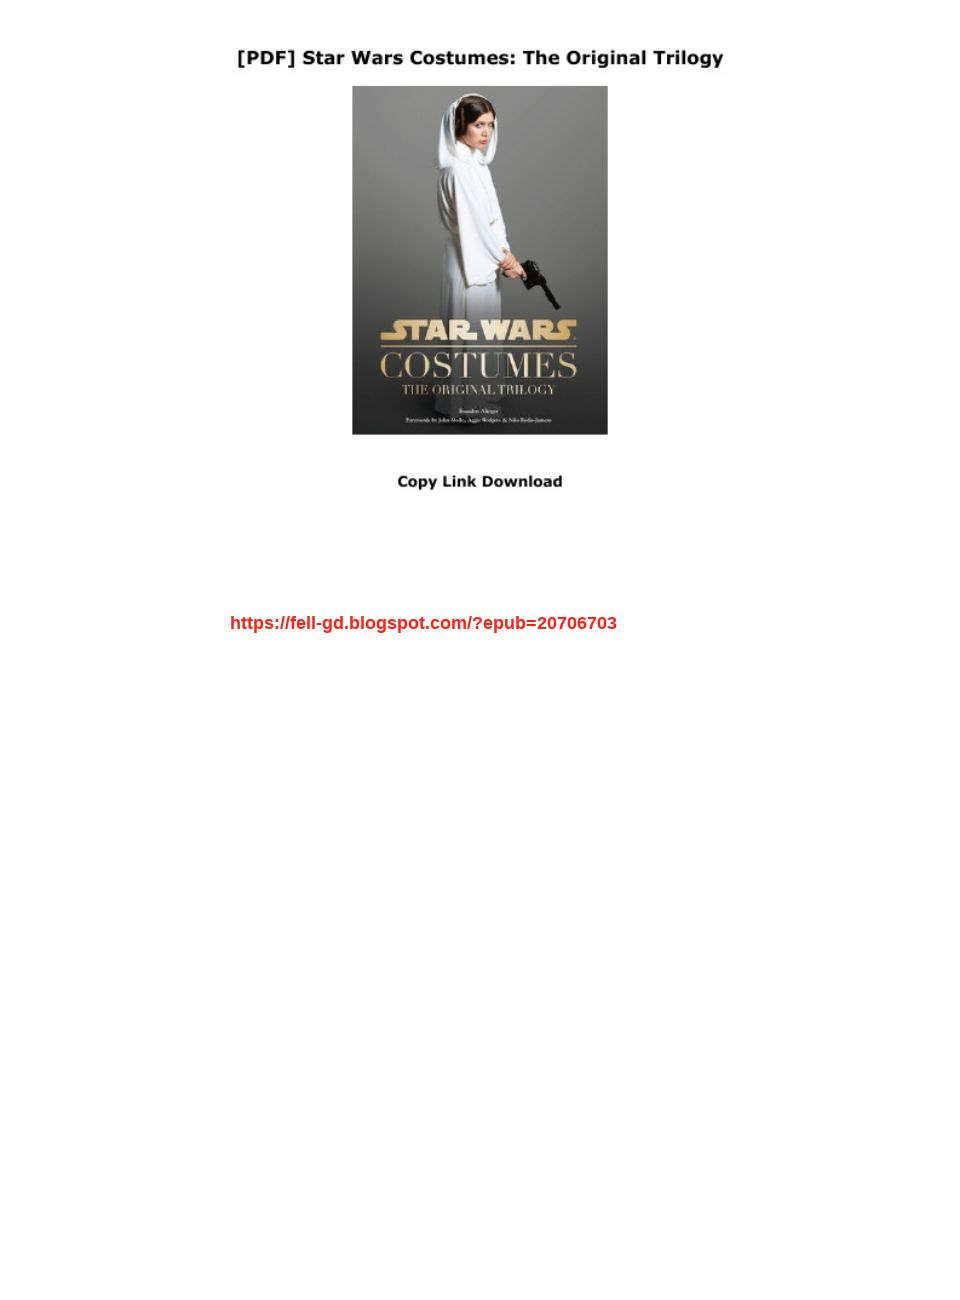 Pdf Star Wars Costumes The Original Trilogy Text Images Music Video Glogster Edu Interactive Multimedia Posters